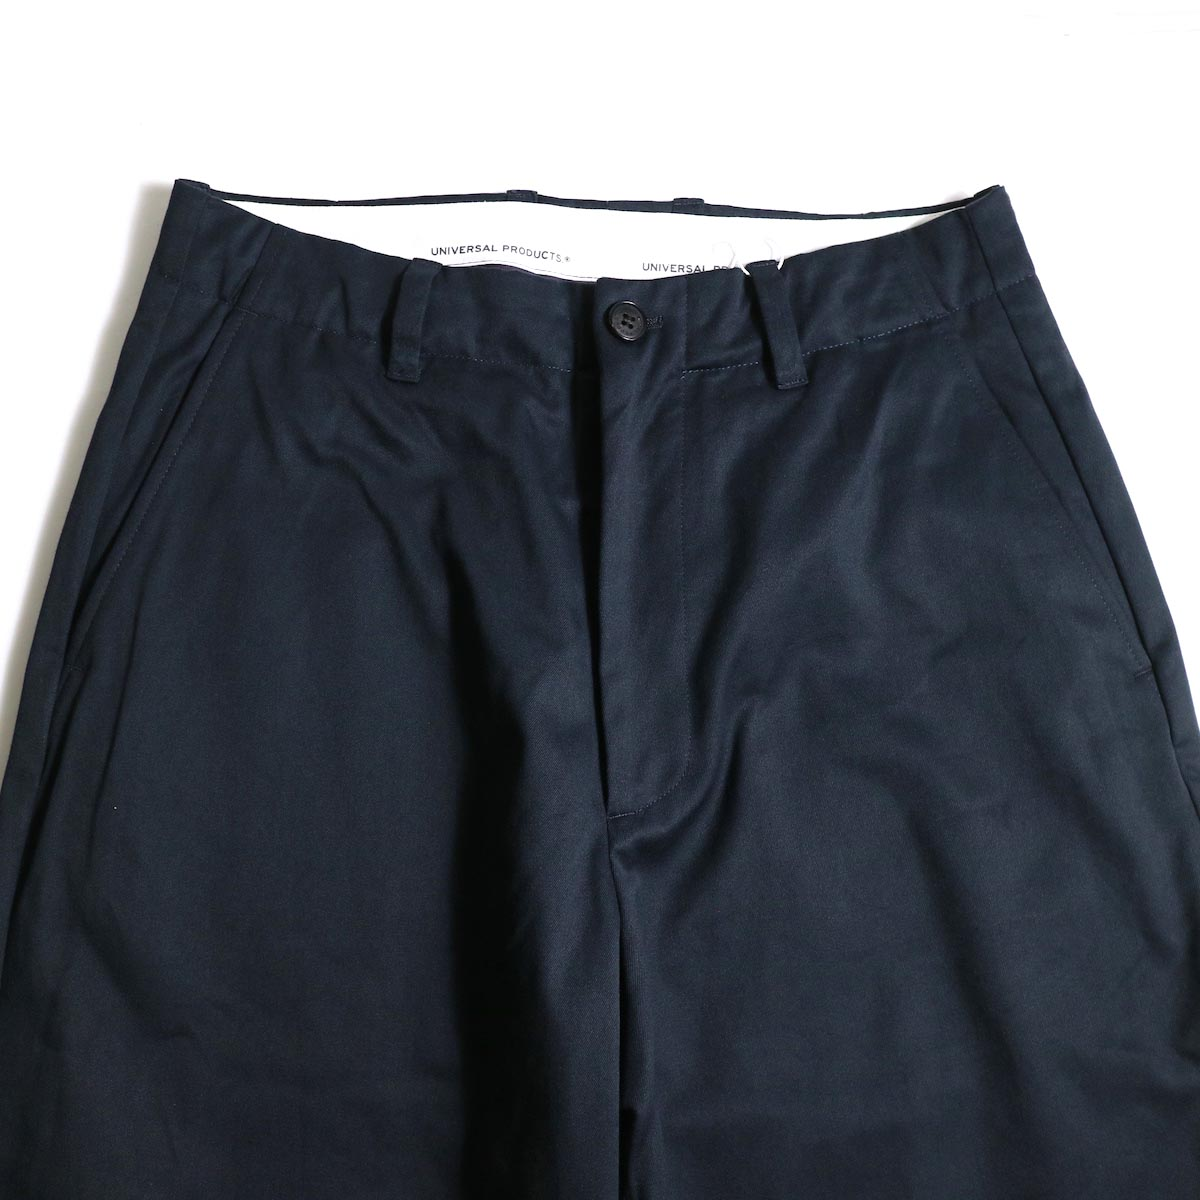 UNIVERSAL PRODUCTS / No Tuck Wide Chino Trousers (Navy)ウエスト